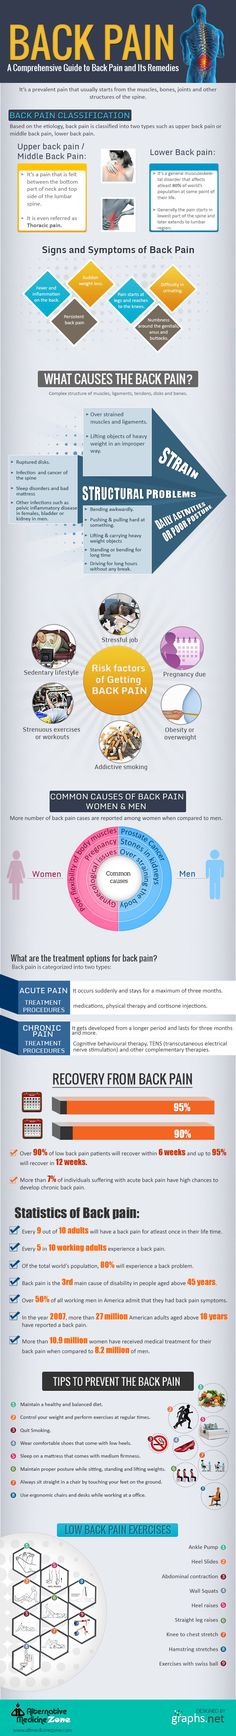 90% of the world's population commonly suffers from #backpain. This info graphic depicts on symptoms, signs, causes and treatment for back pain.